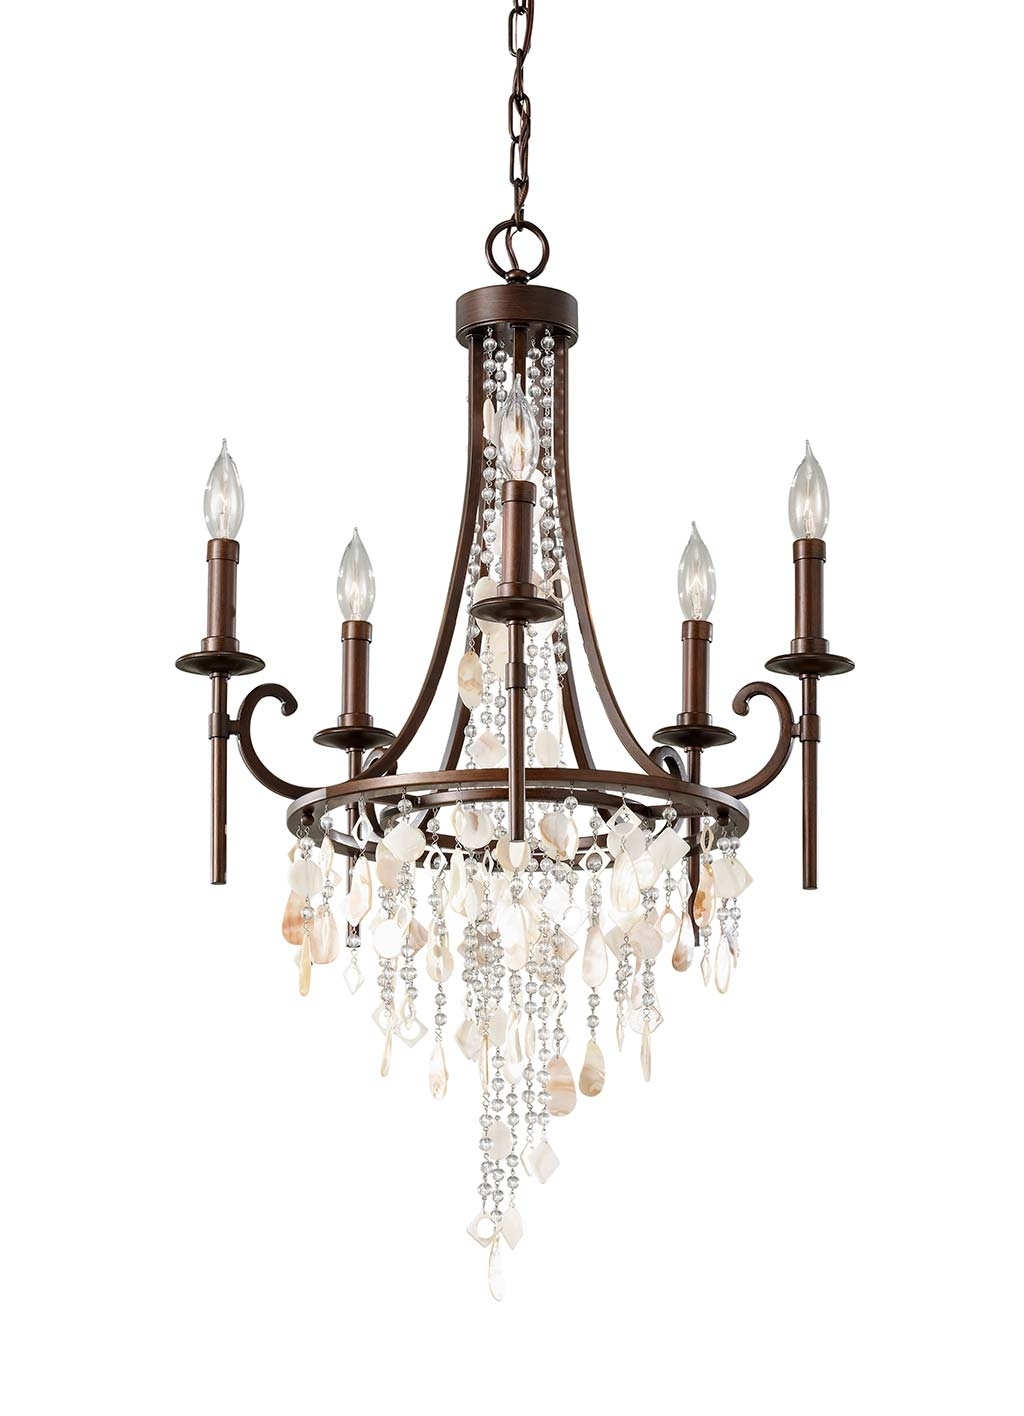 Featured Image of Feiss Chandeliers